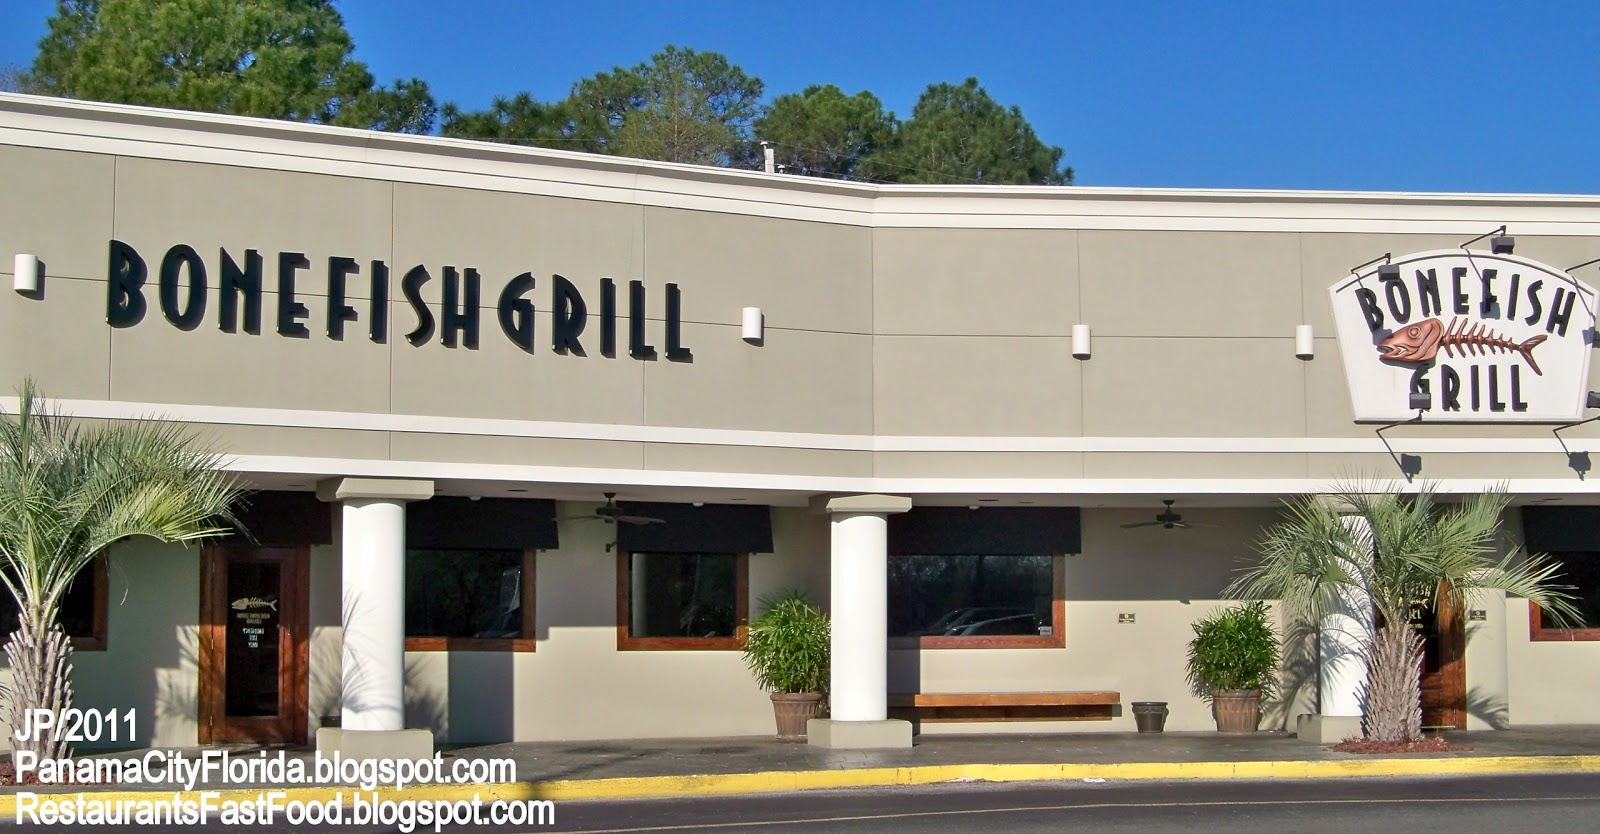 Bonefish Grill Panama City Florida Seafood Restaurant Fl West 23rd Street